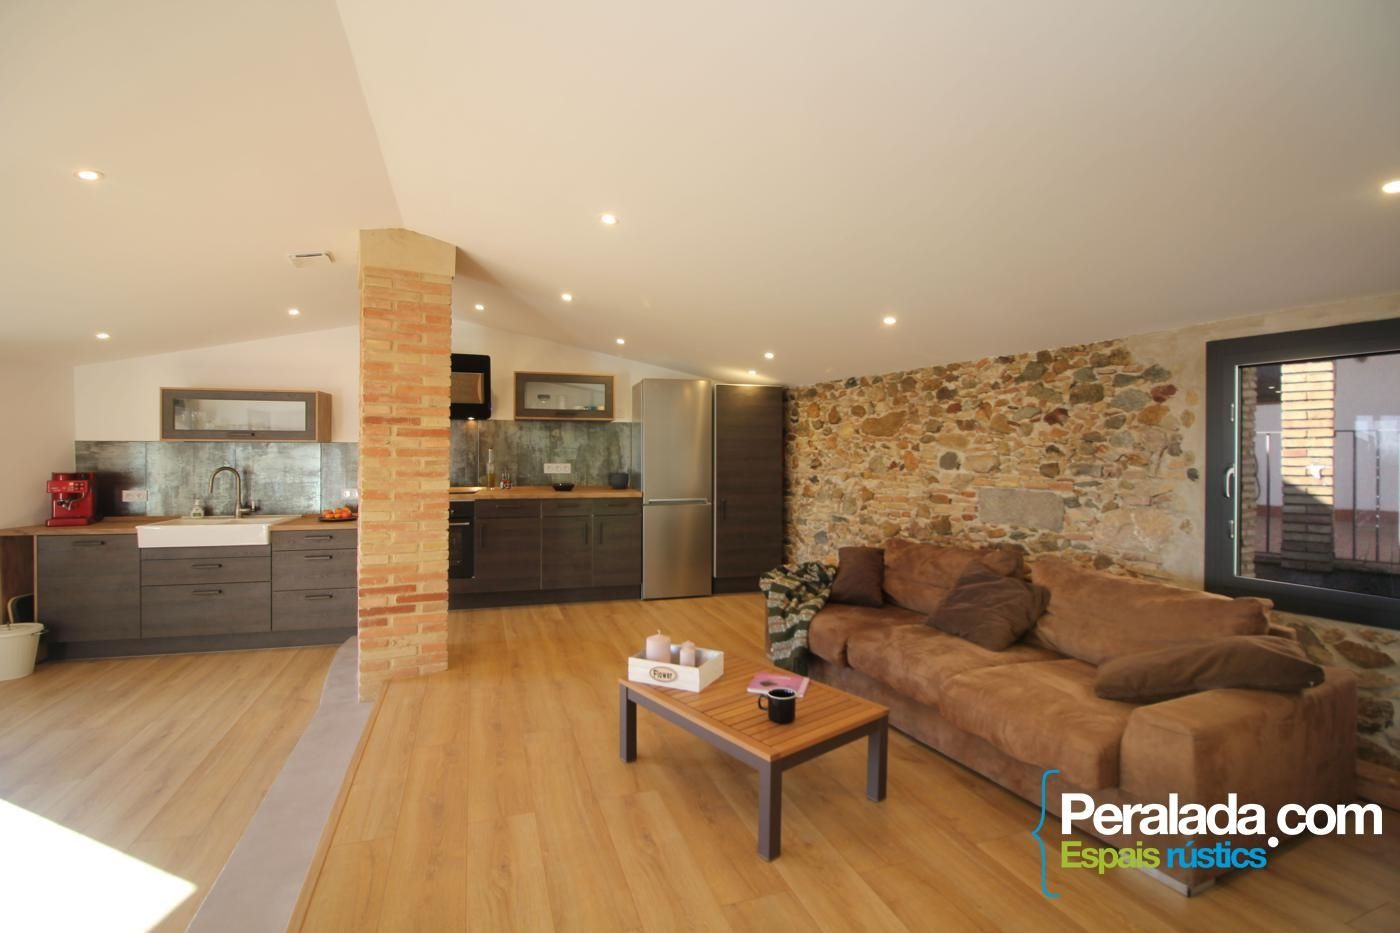 House in Passatge fort, 7. Rustica, agradable, confortable